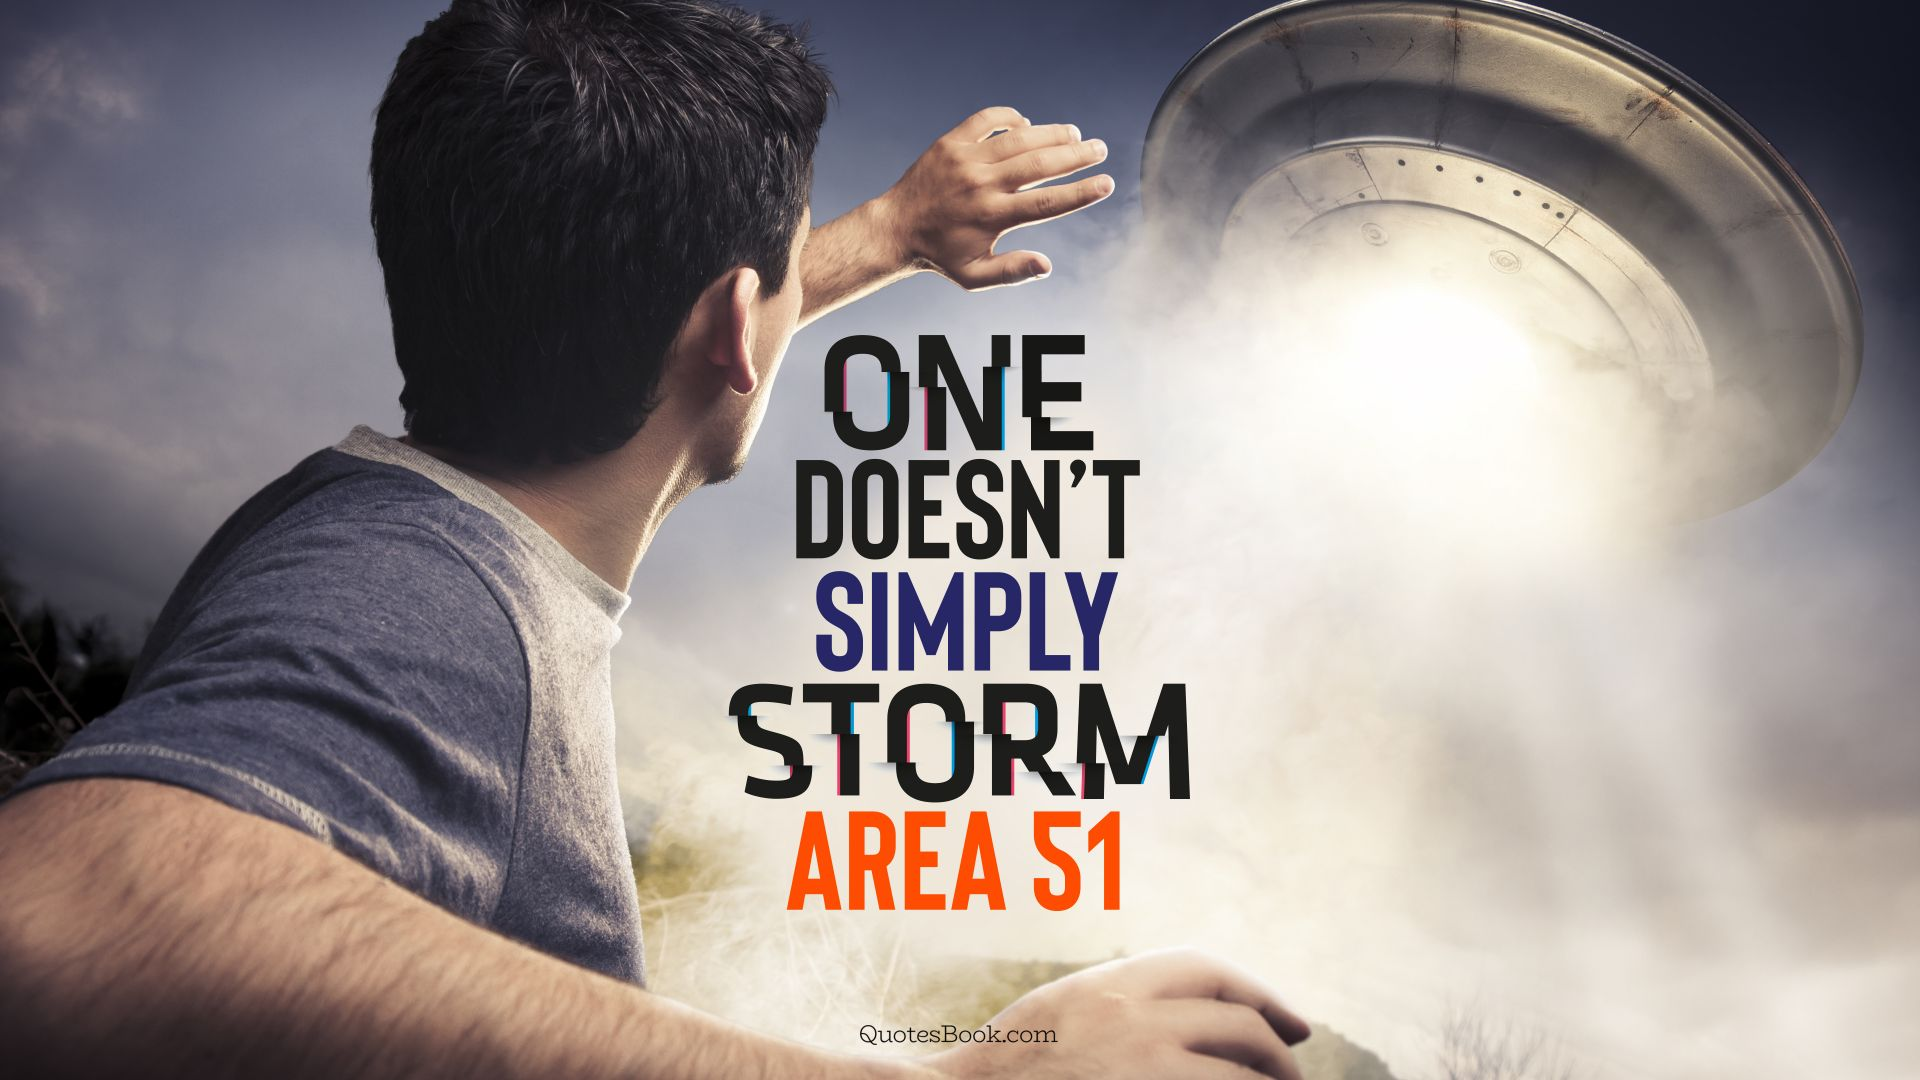 One doesn't simply storm Area 51